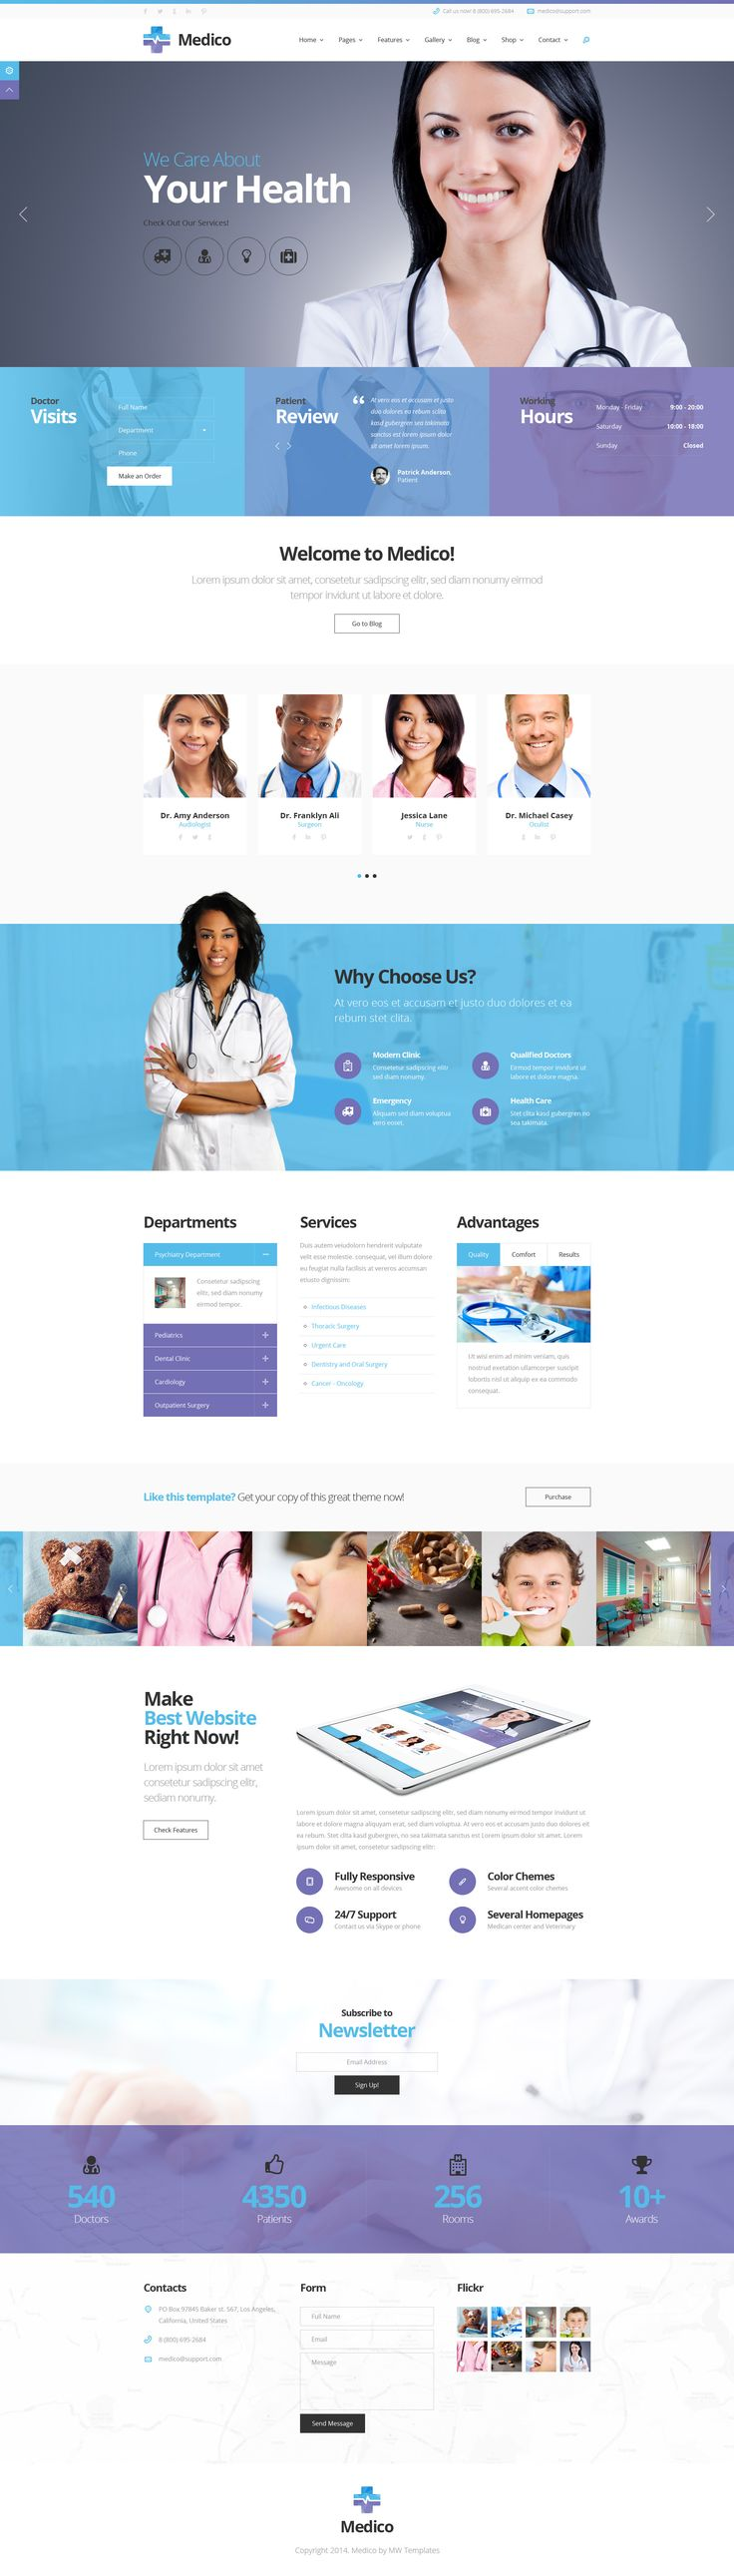 Medico - Medical & Veterinary PSD Template